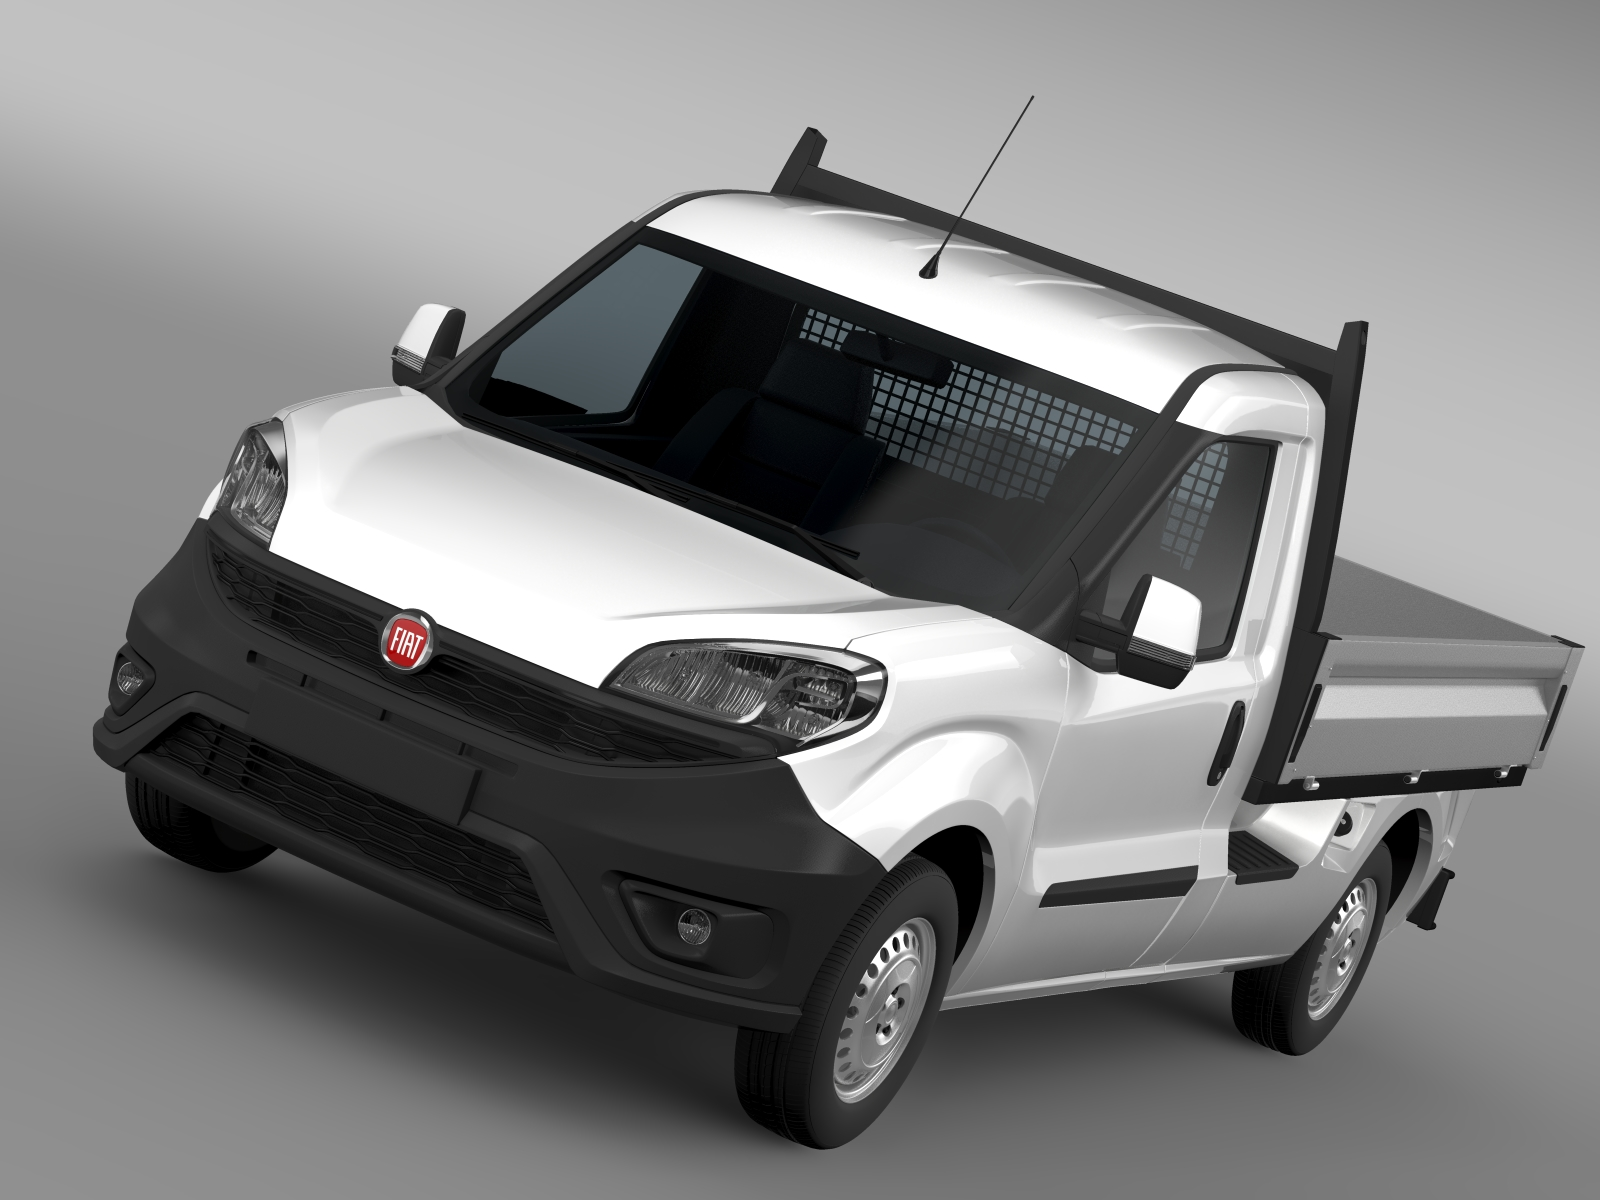 fiat doblo work up 263 2016 3d model buy fiat doblo work up 263 2016 3d model flatpyramid. Black Bedroom Furniture Sets. Home Design Ideas